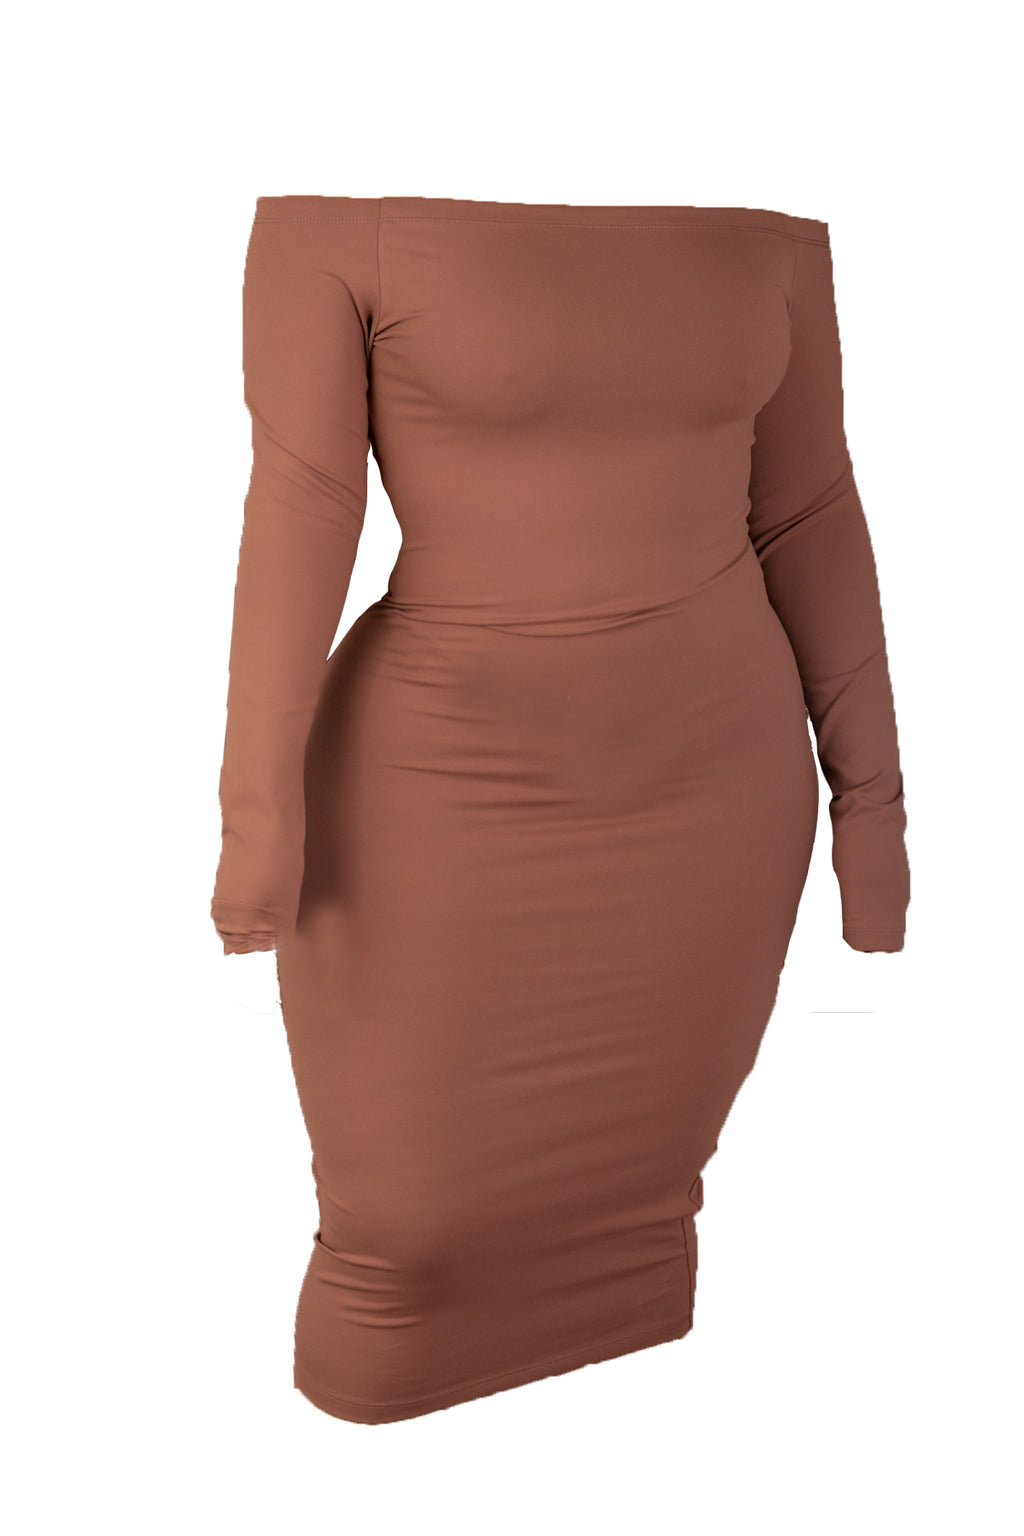 The MOCHA Wifey Shaping *MIDI* 2